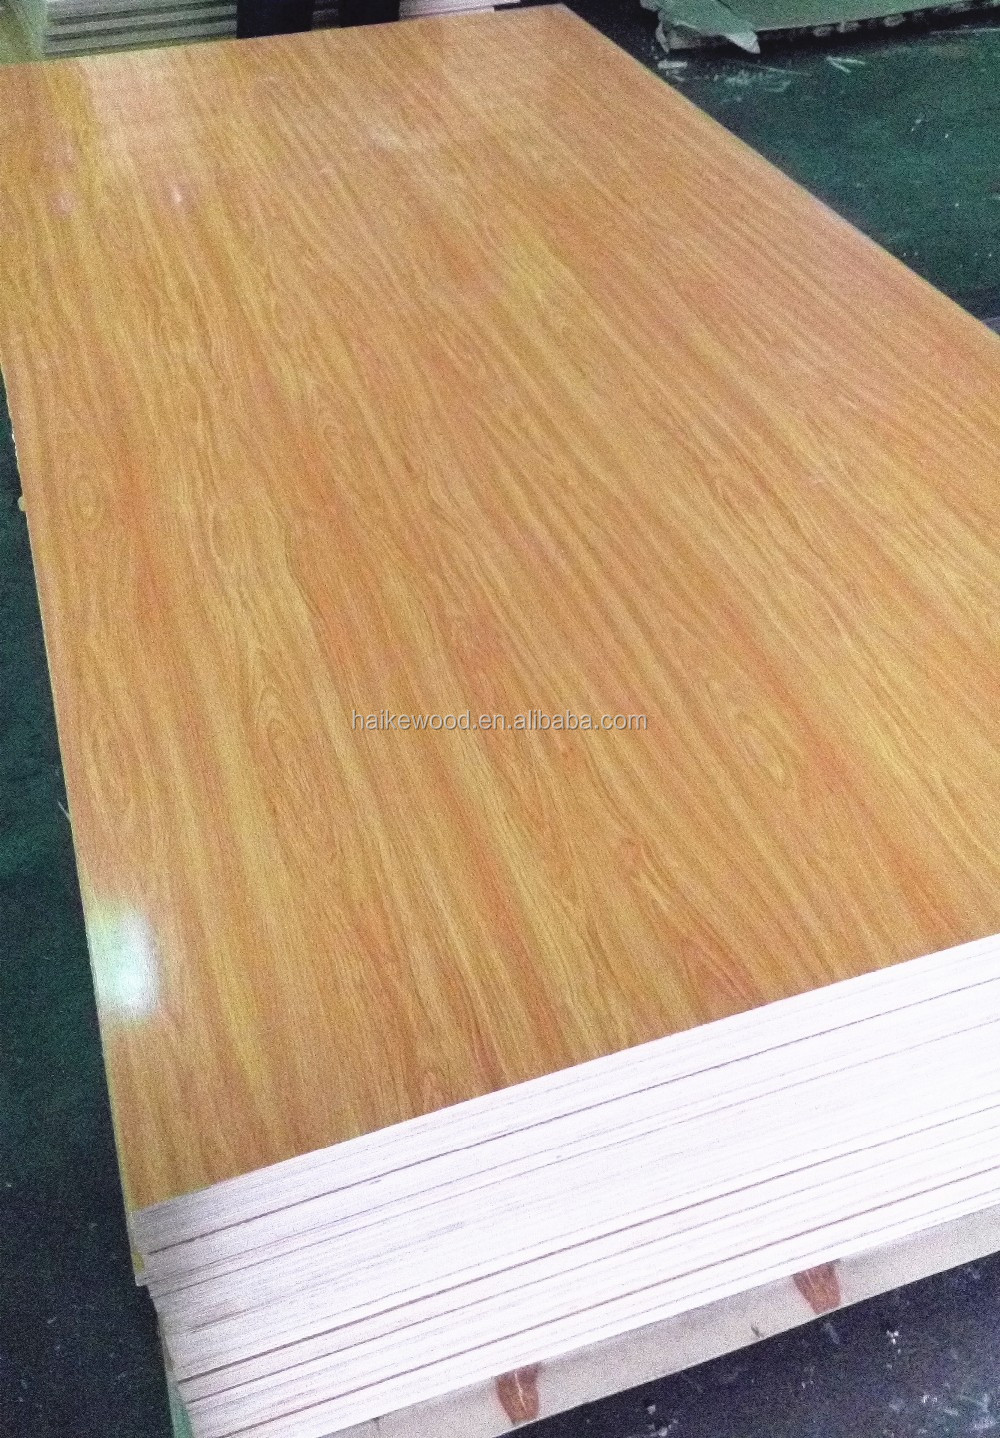 Waterproof high density fiberboard medium